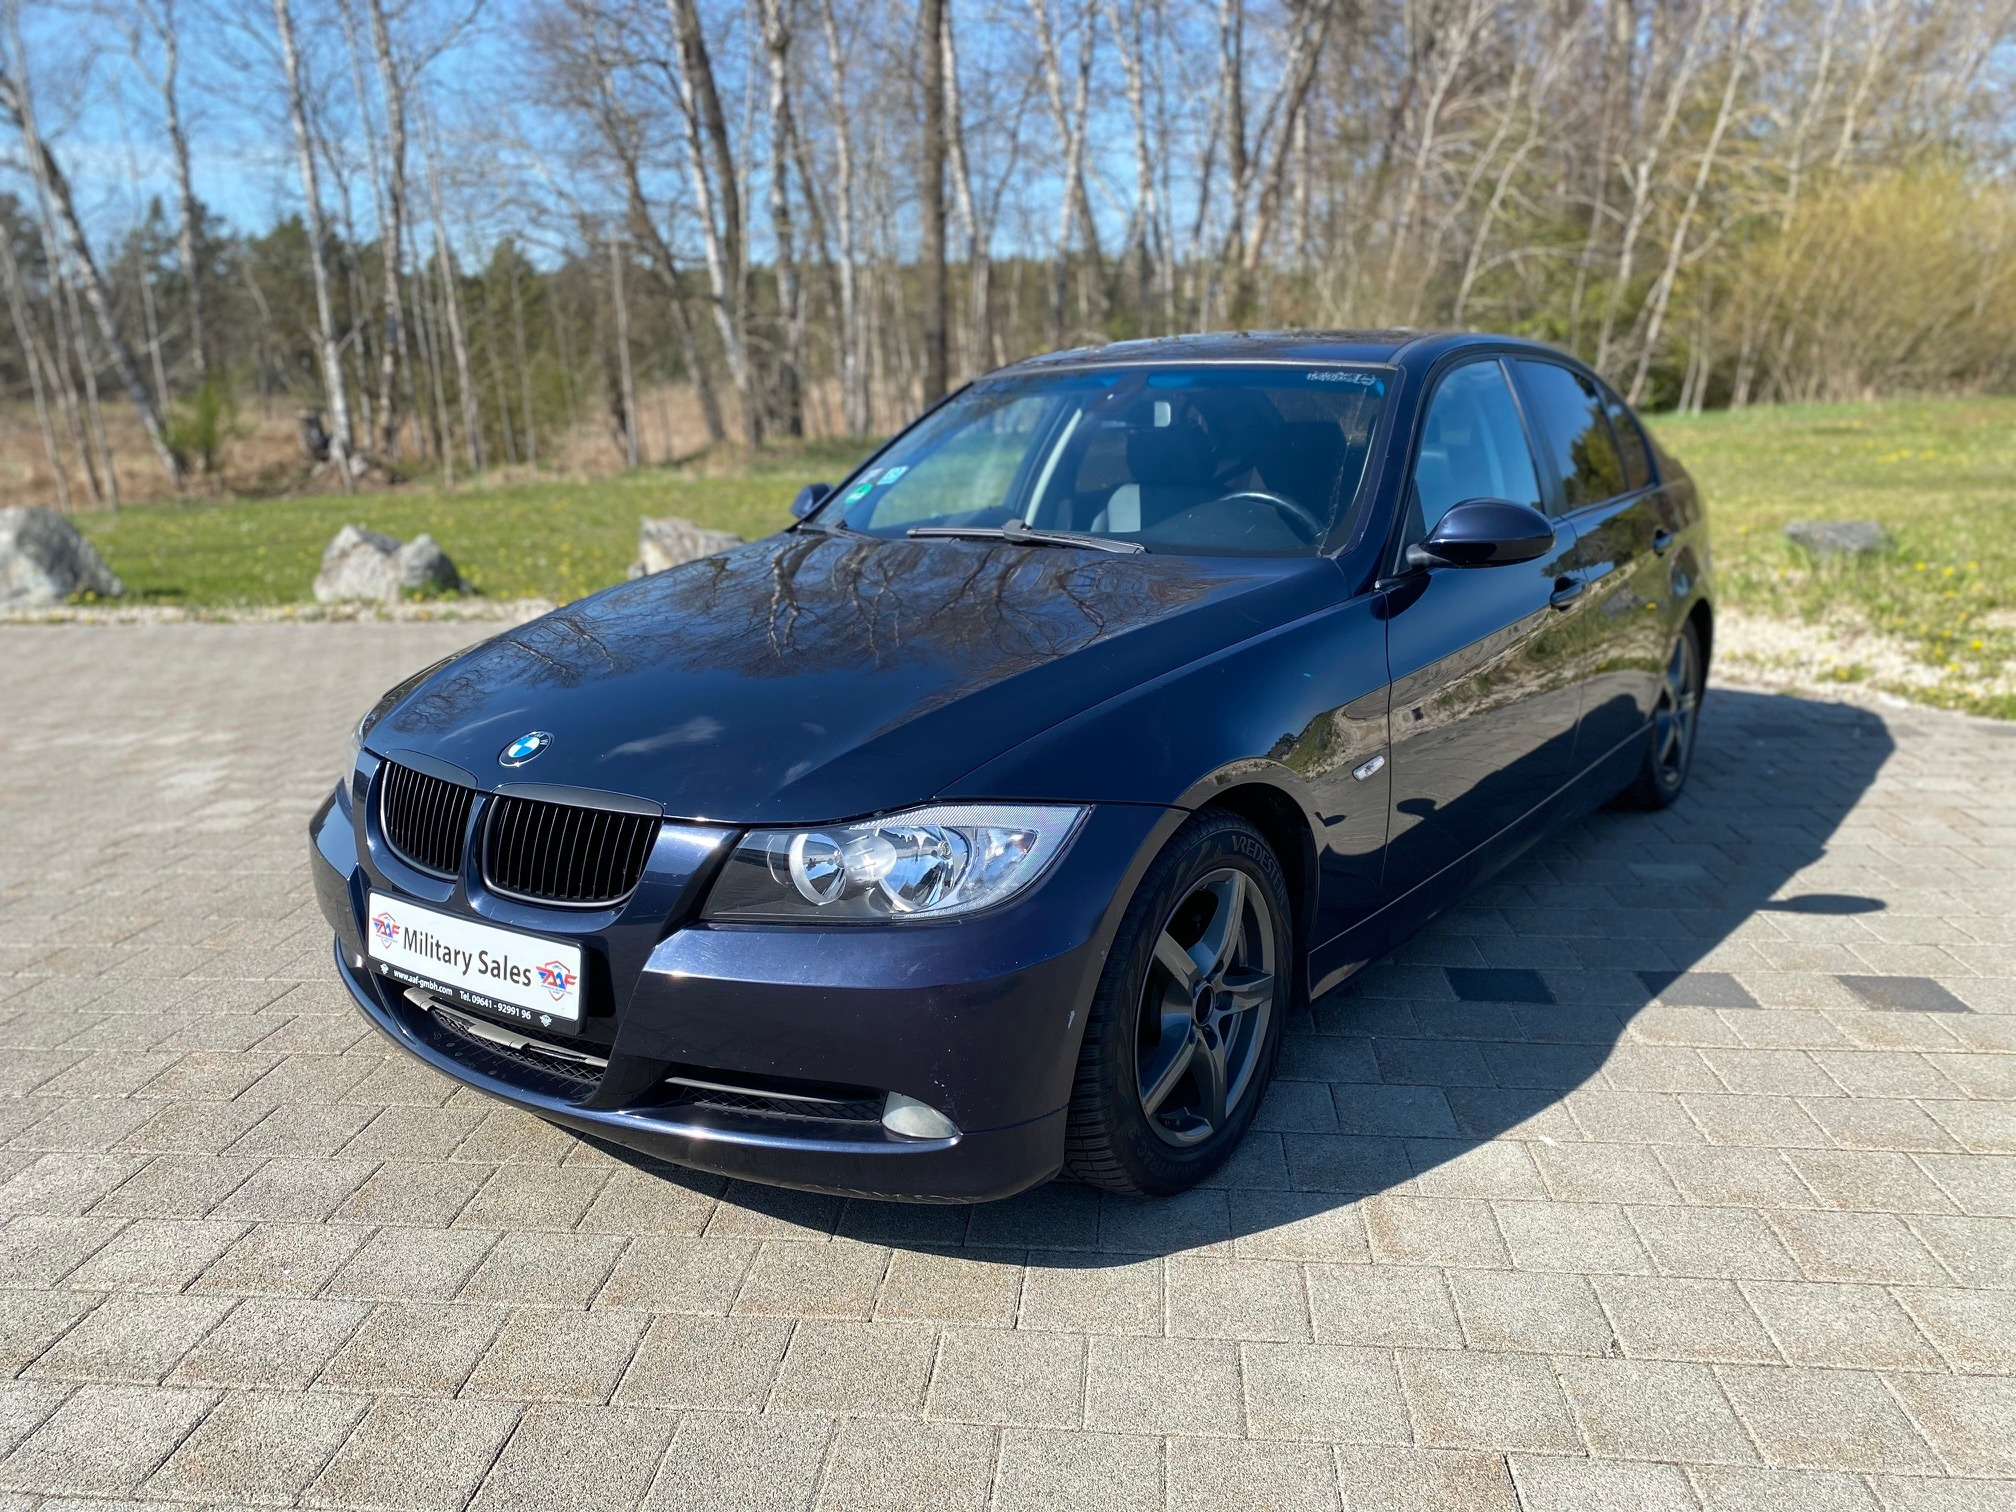 2006 BMW 325i</br>as low as </br>$49 per paycheck